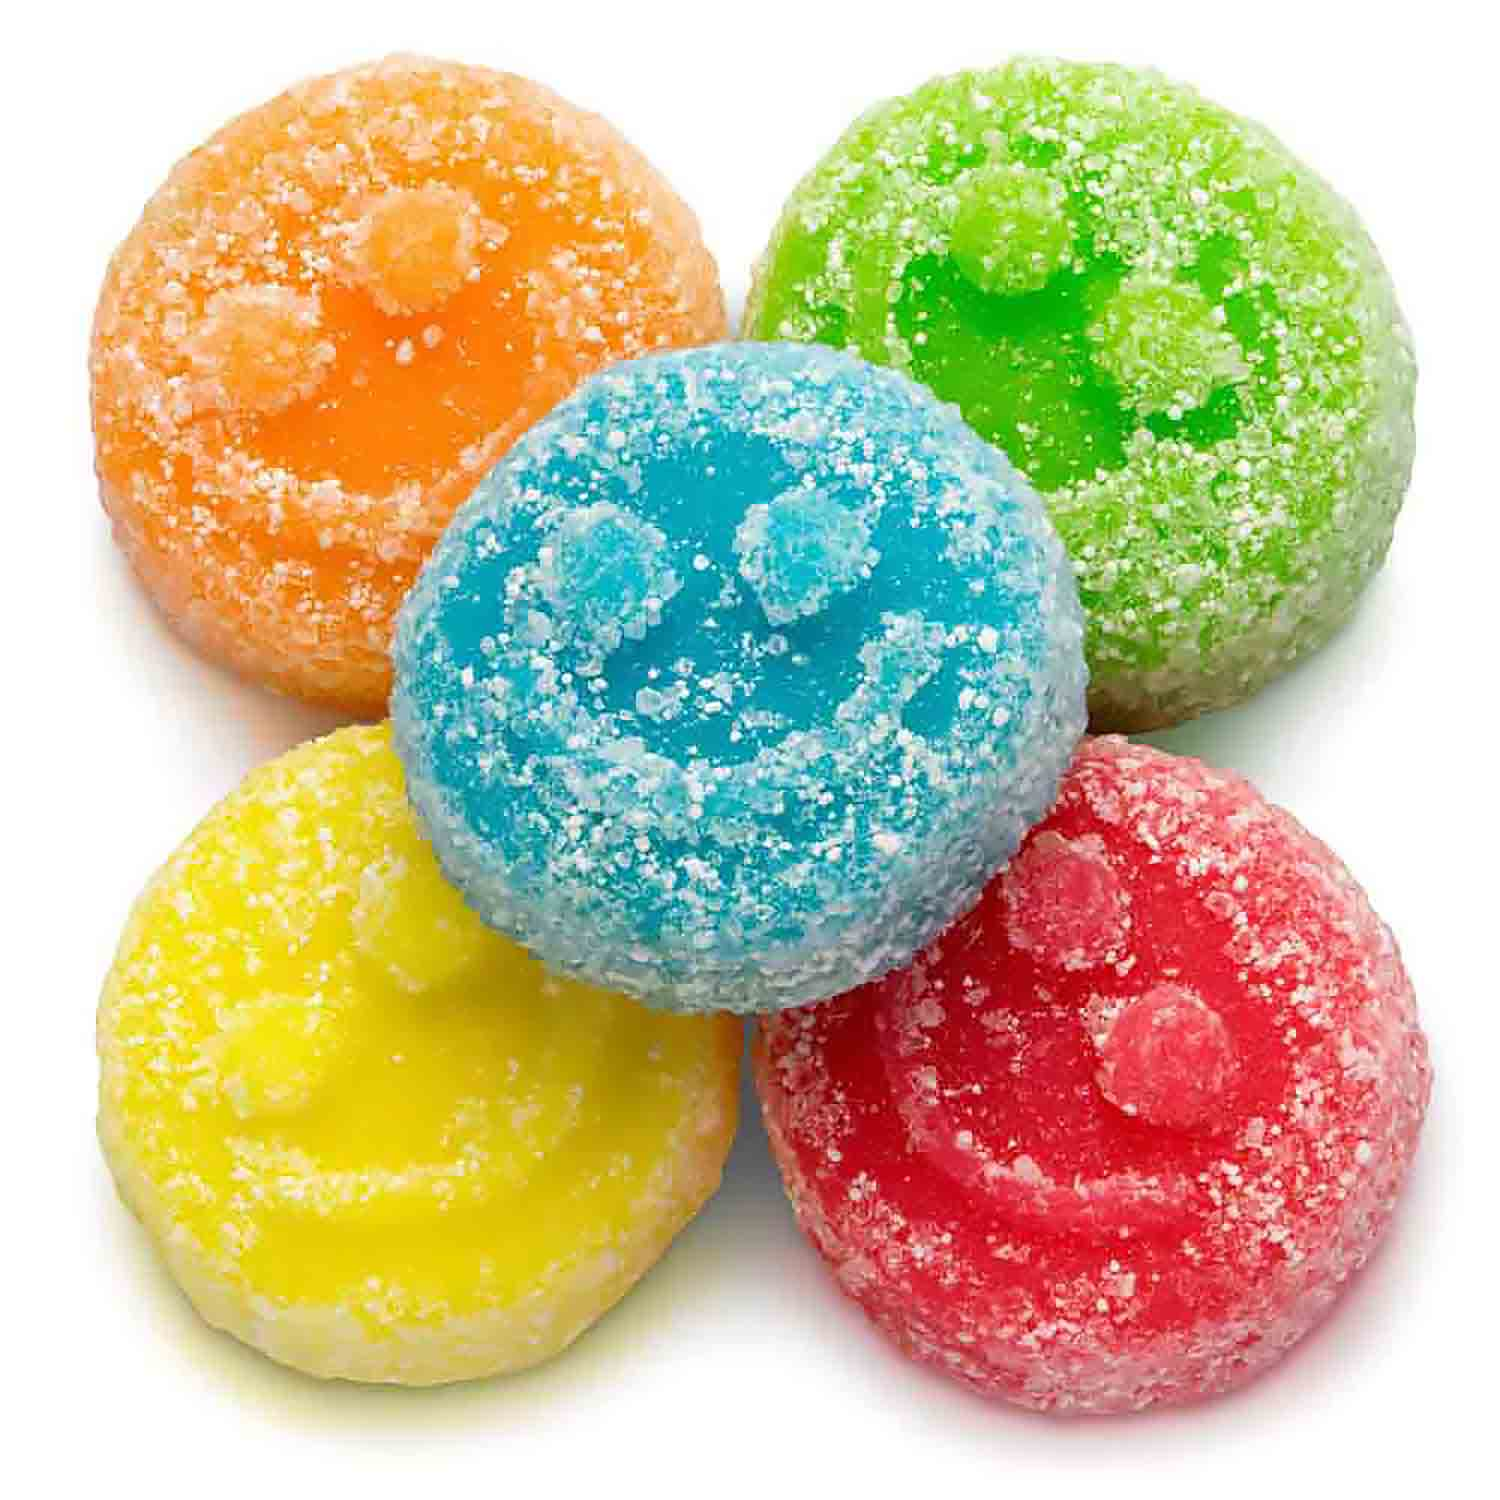 Sour Poppers Smiley Face Gummies - AN-50126 | Country Kitchen SweetArt